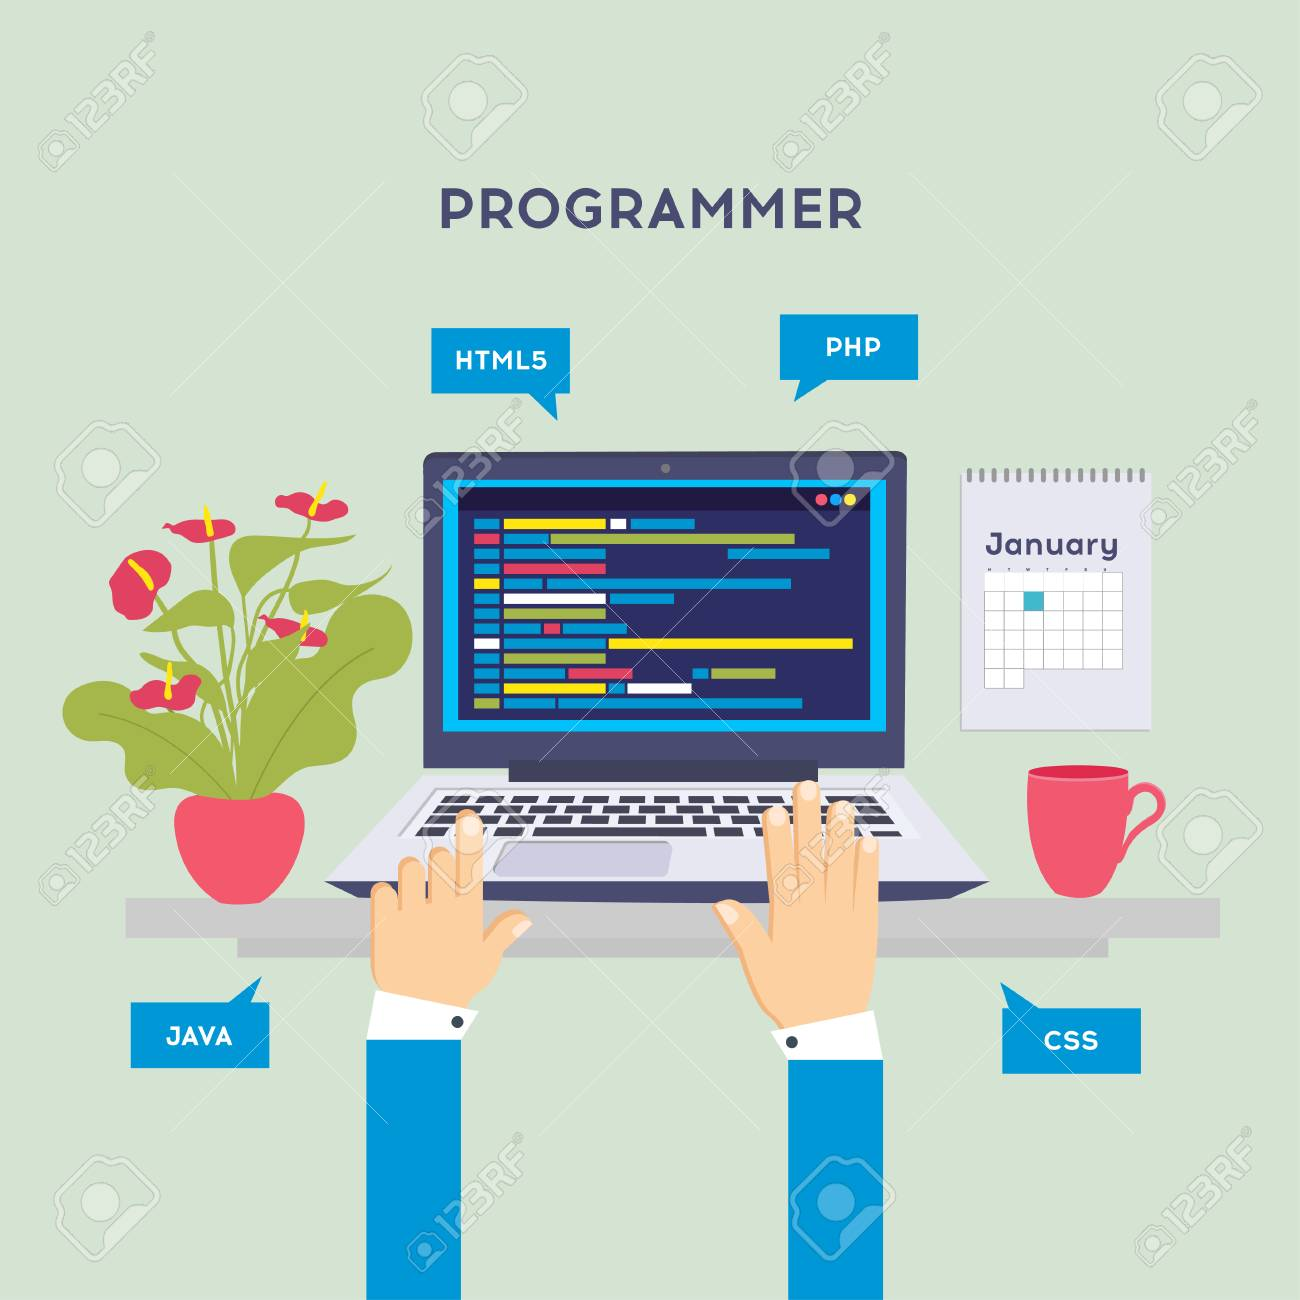 Workplace of programmer or coder. Software coding, programming languages, testing, debugging, web site, search engine seo Vector illustration in flat style - 126912713